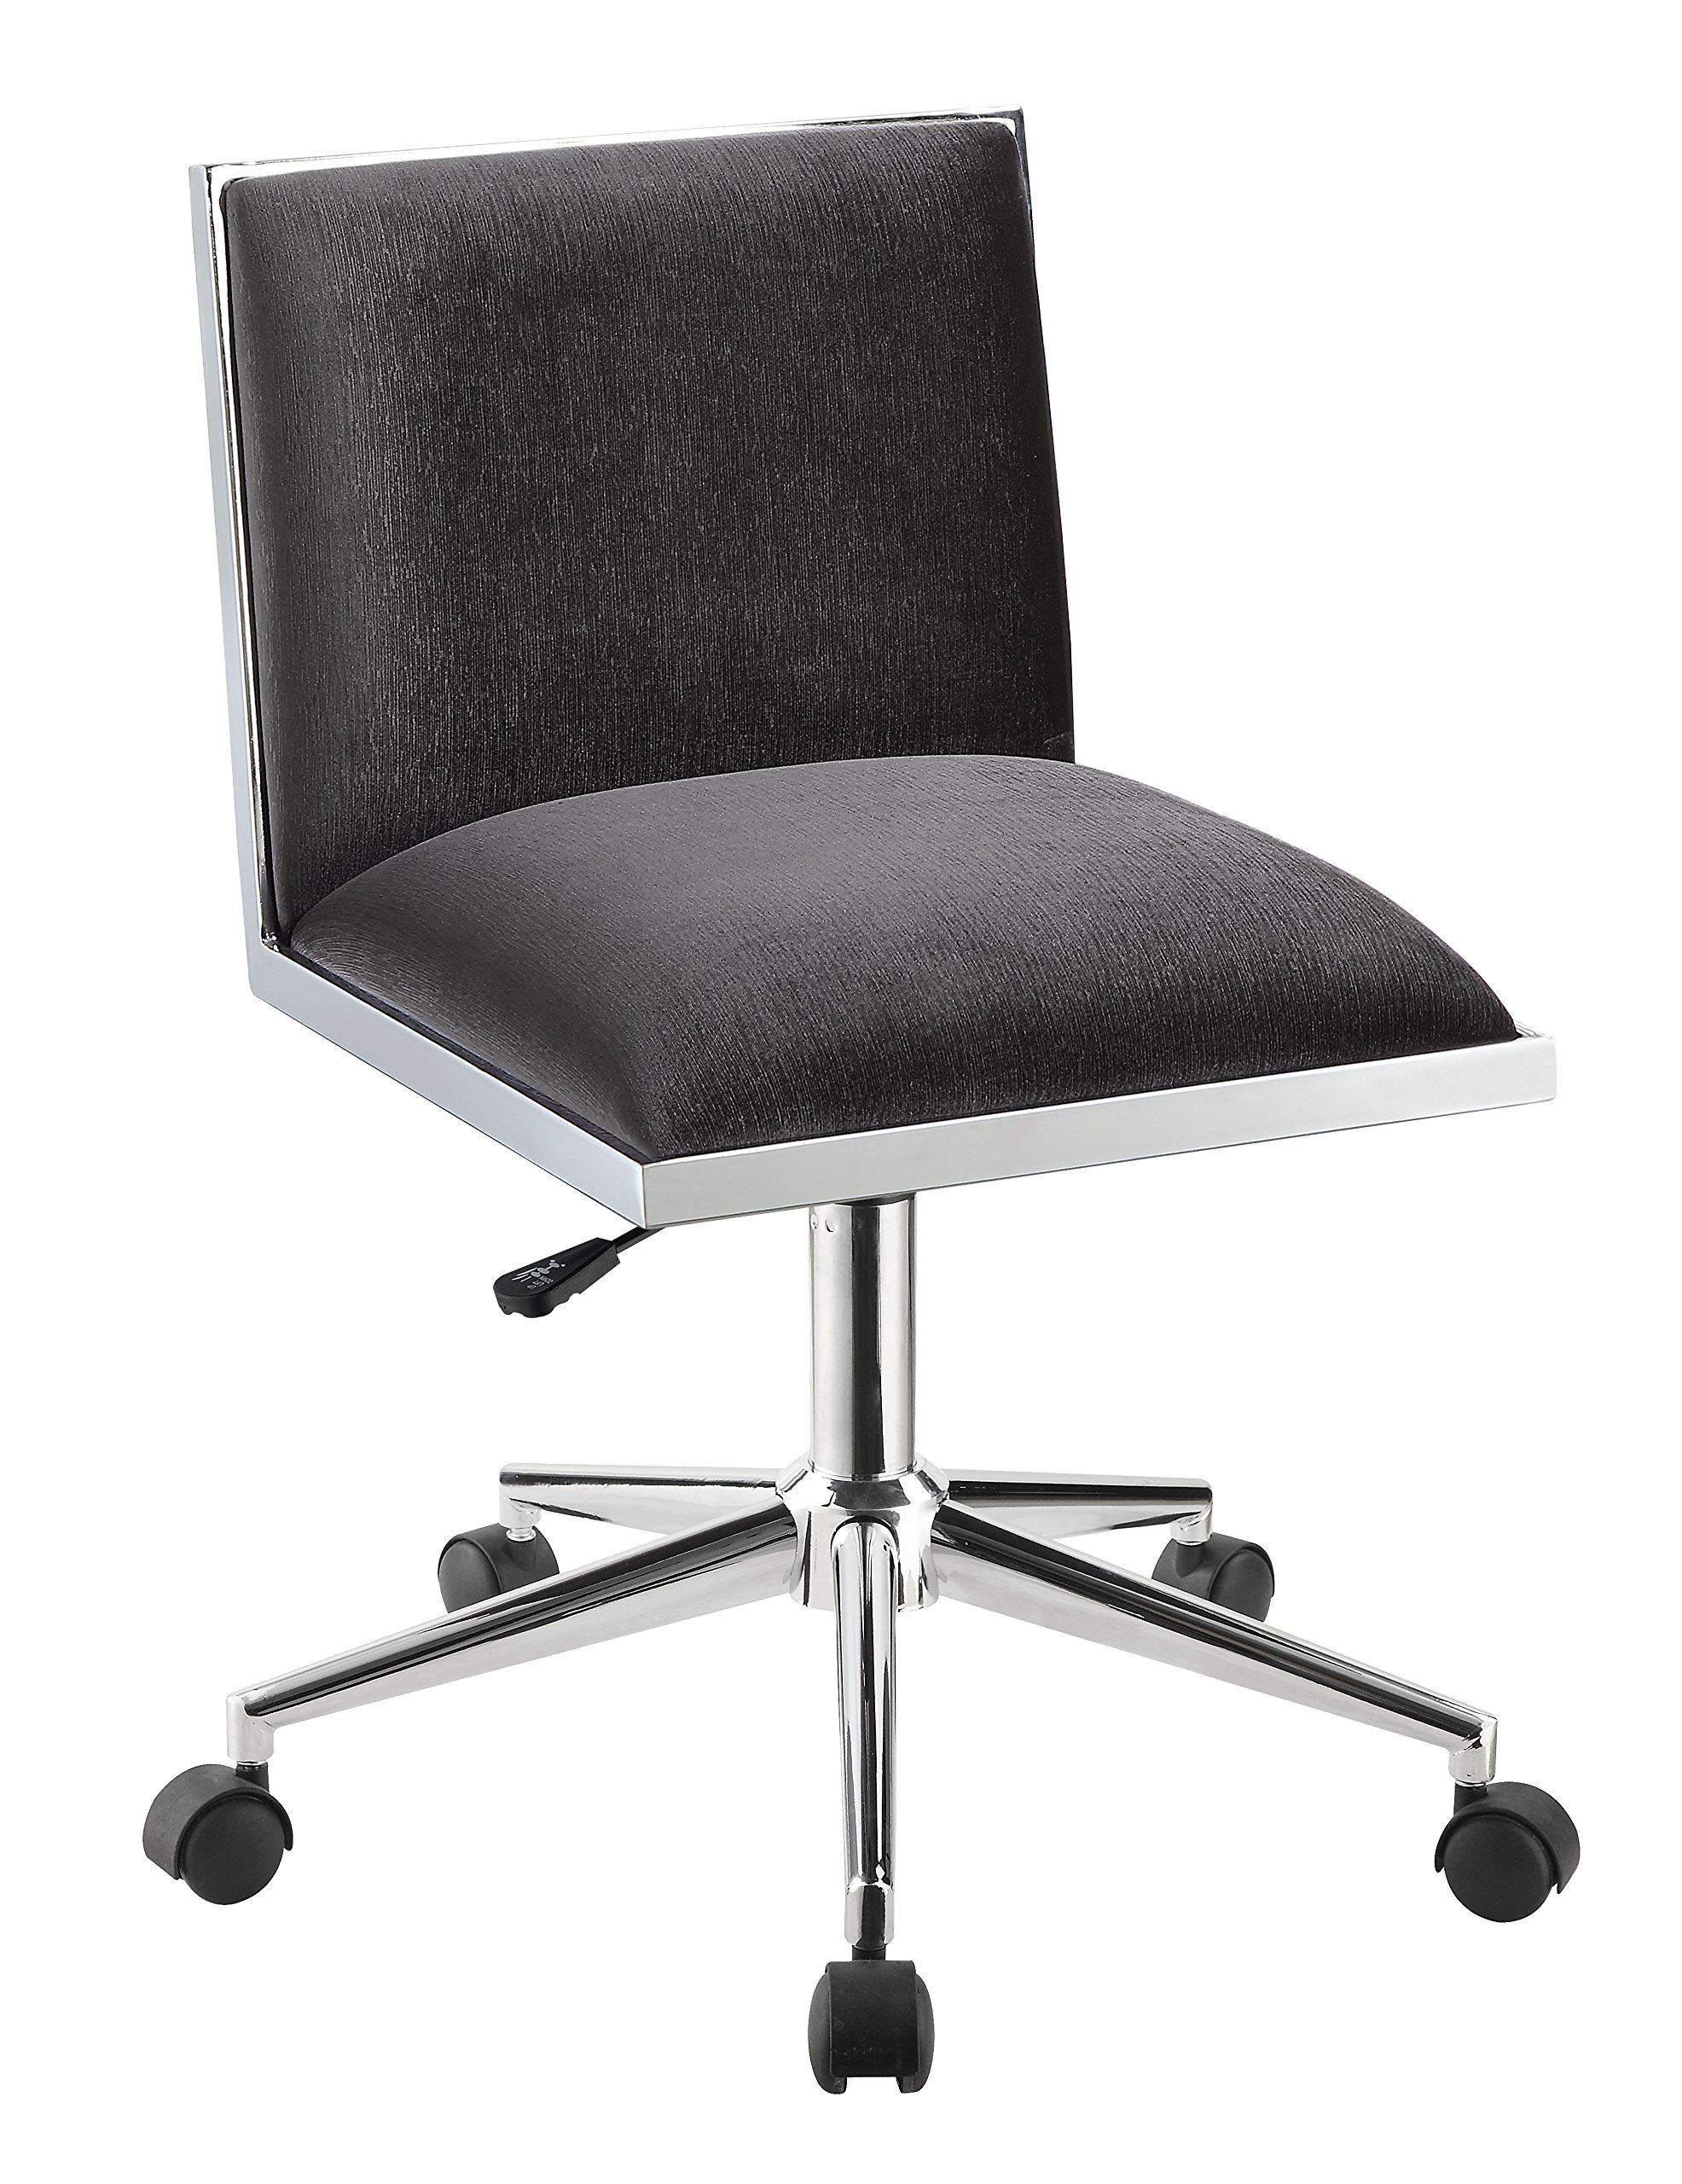 HOMES: Inside + Out IDF-FC655GY Violas Office Chair, Gray